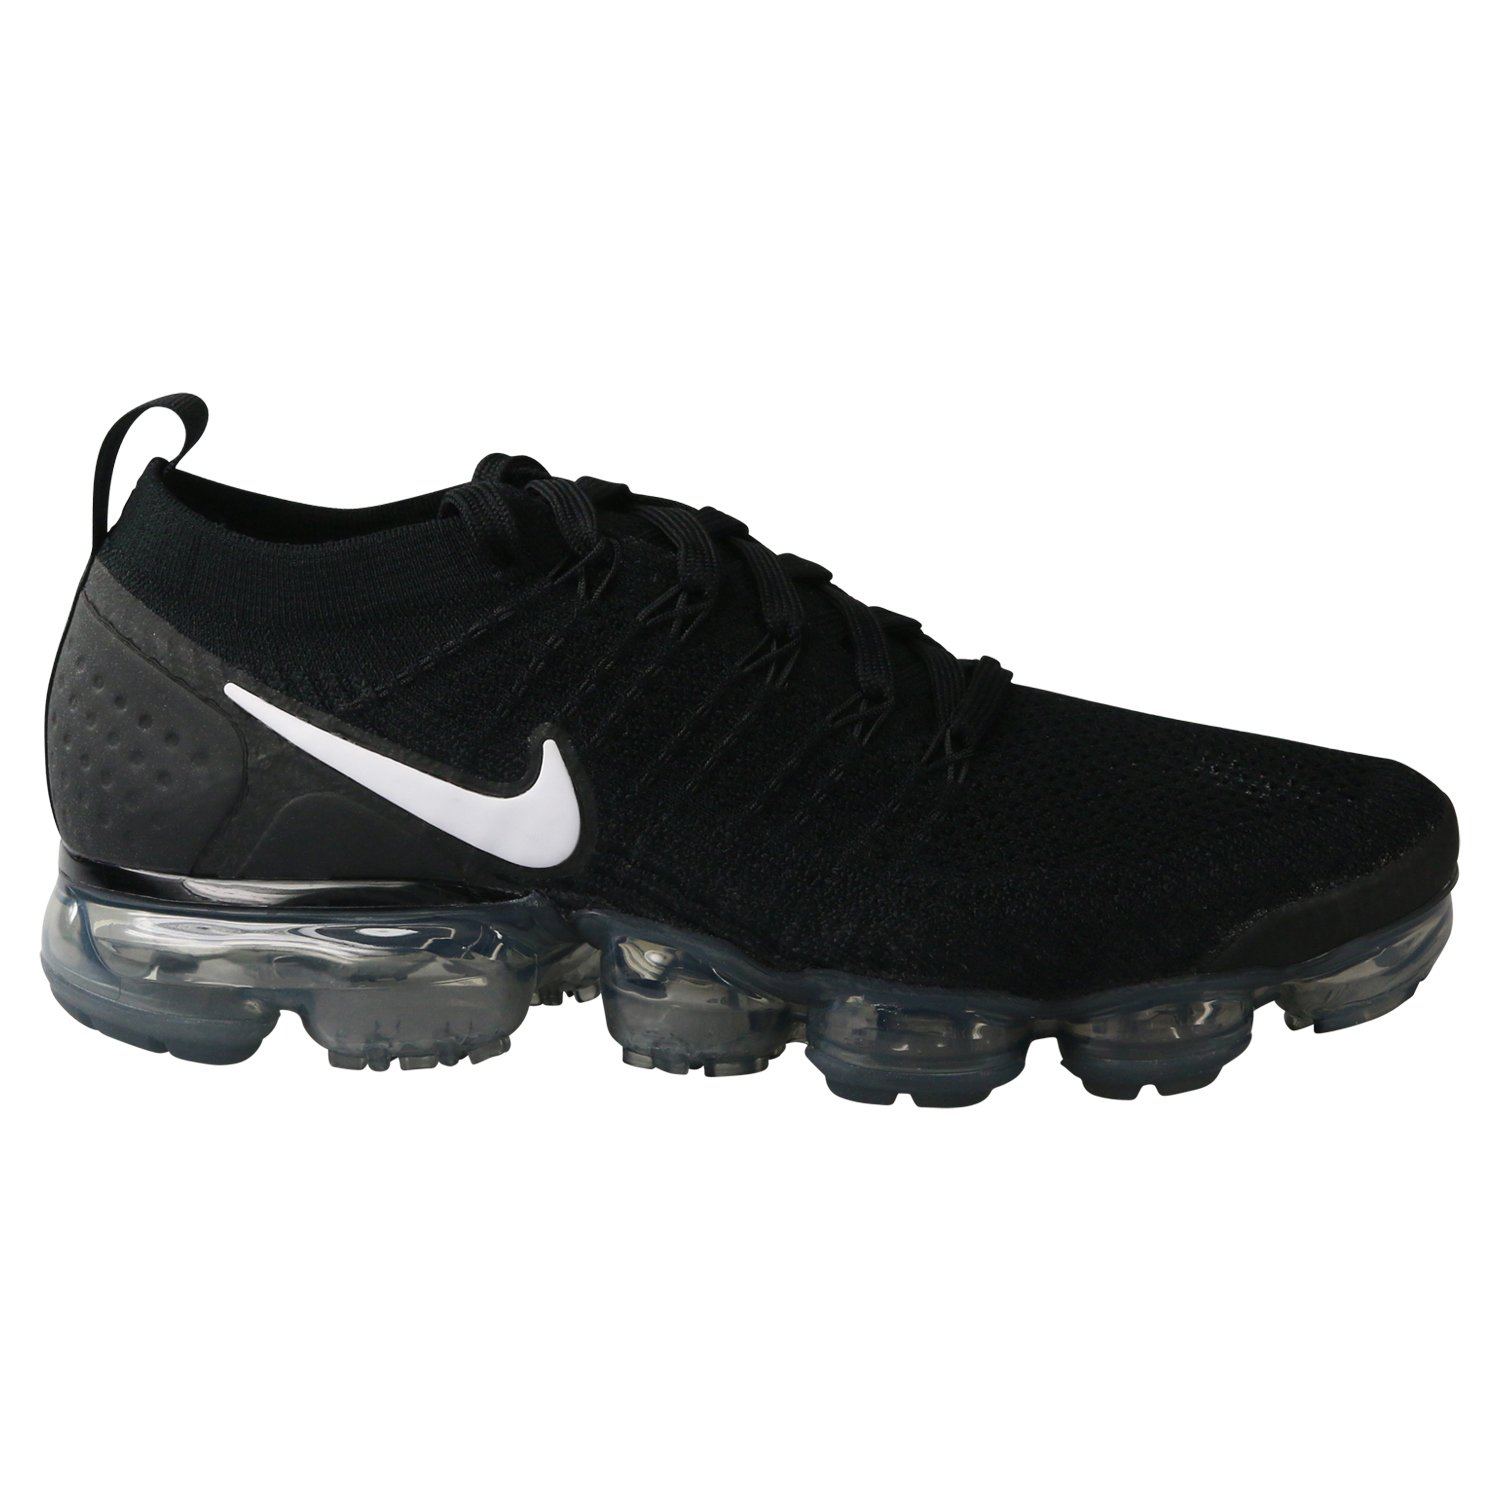 sale retailer 85e6f dc1ce Nike Men's Air Vapormax Flyknit 2 Running Shoes (11.5, Black/White/Grey)